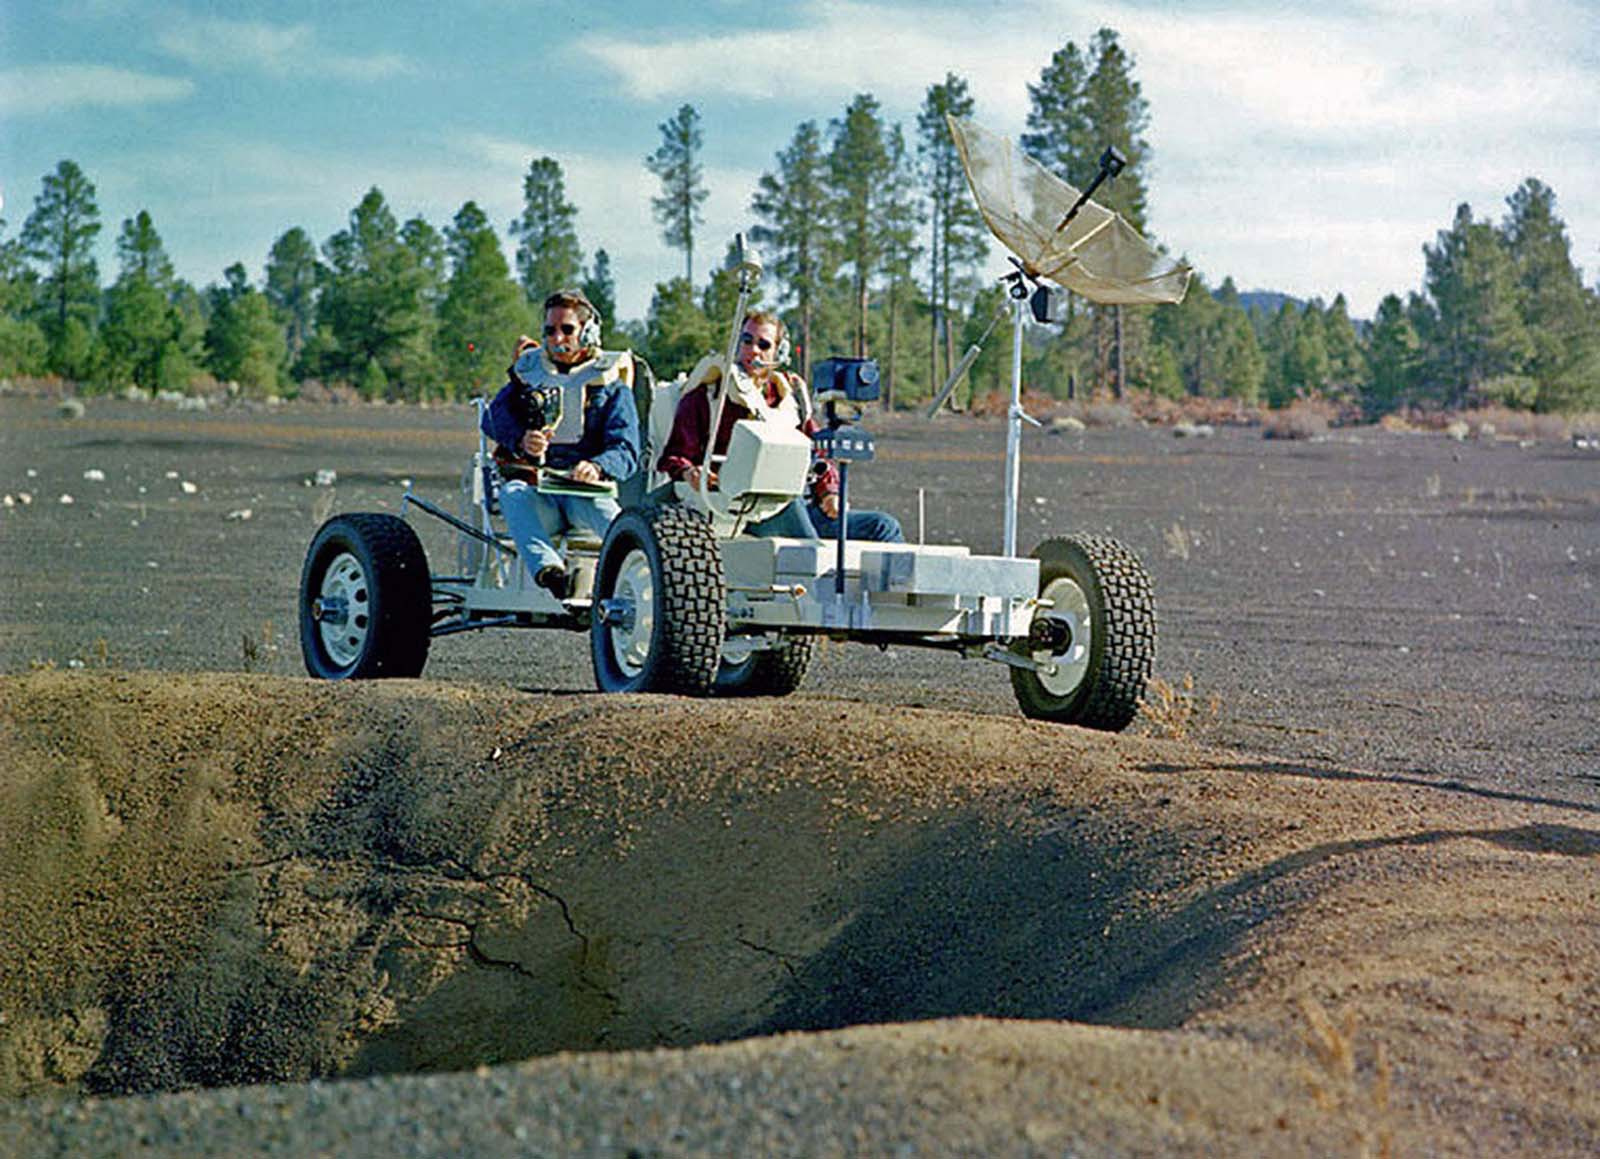 The astronauts Jim Irwin and Dave Scott pilot Grover near the rim of a large crater in the Cinder Lake Crater Field.